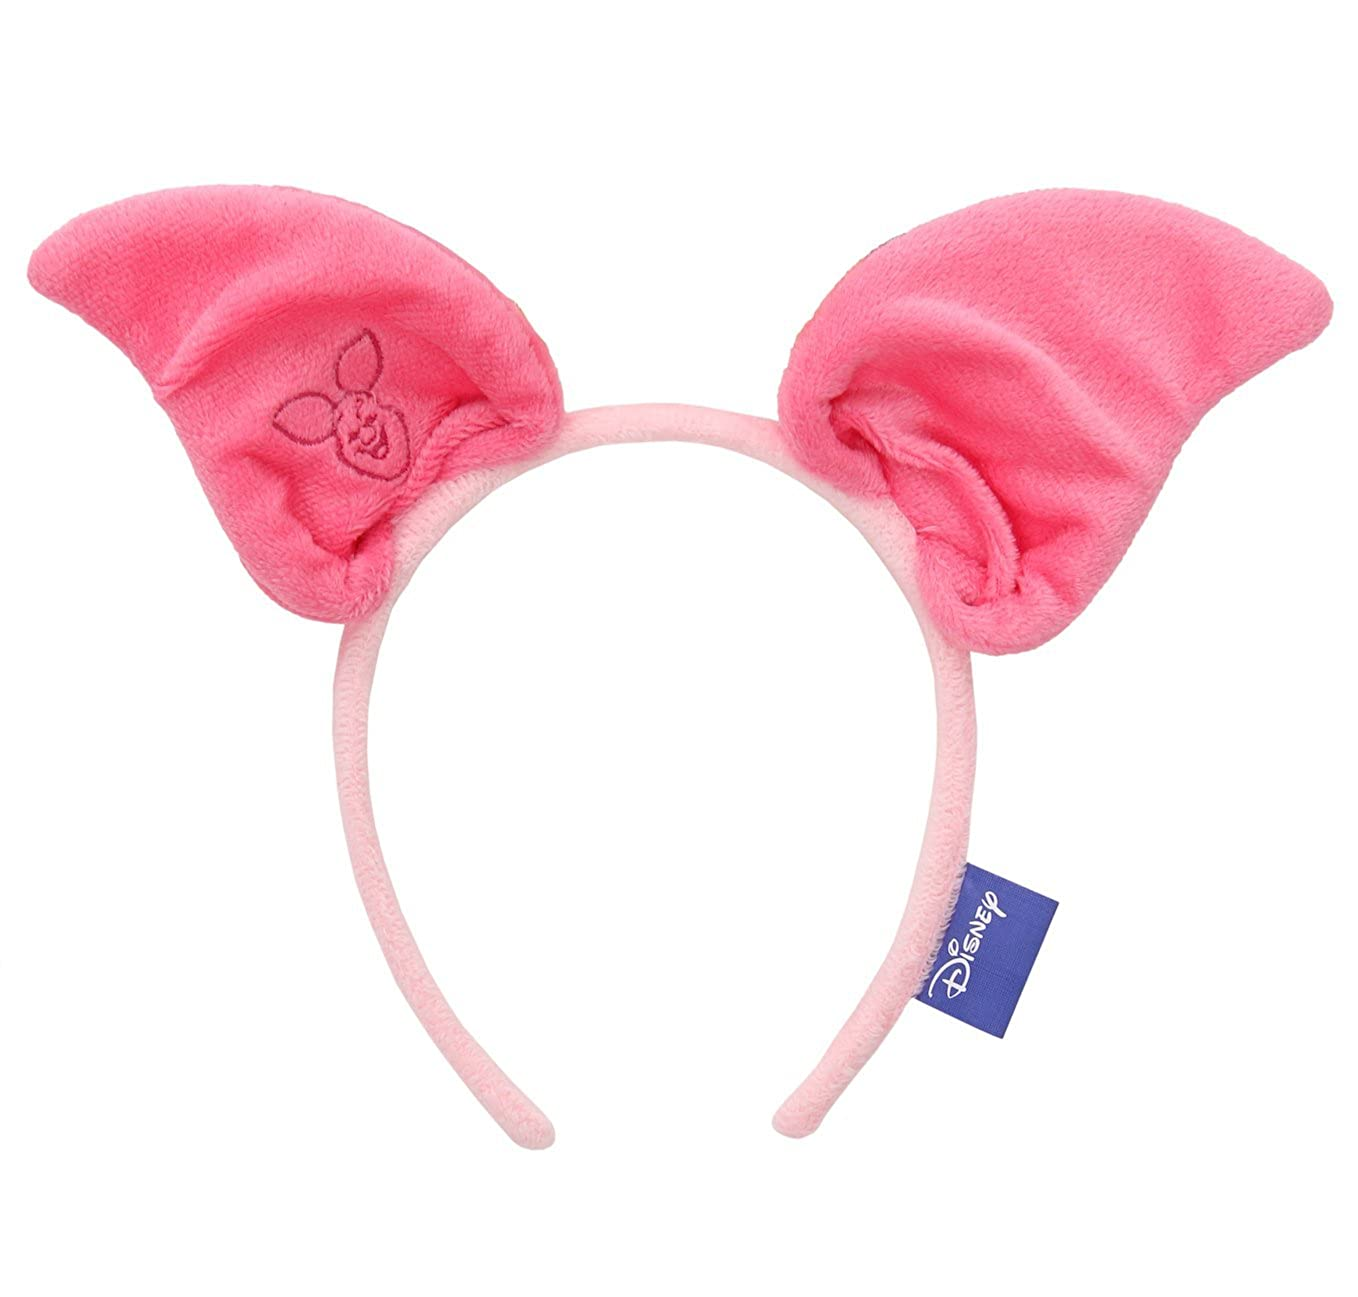 0579f8738bb Amazon.com  Elope Disney Winnie the Pooh Piglet Ears Costume Headband   Clothing